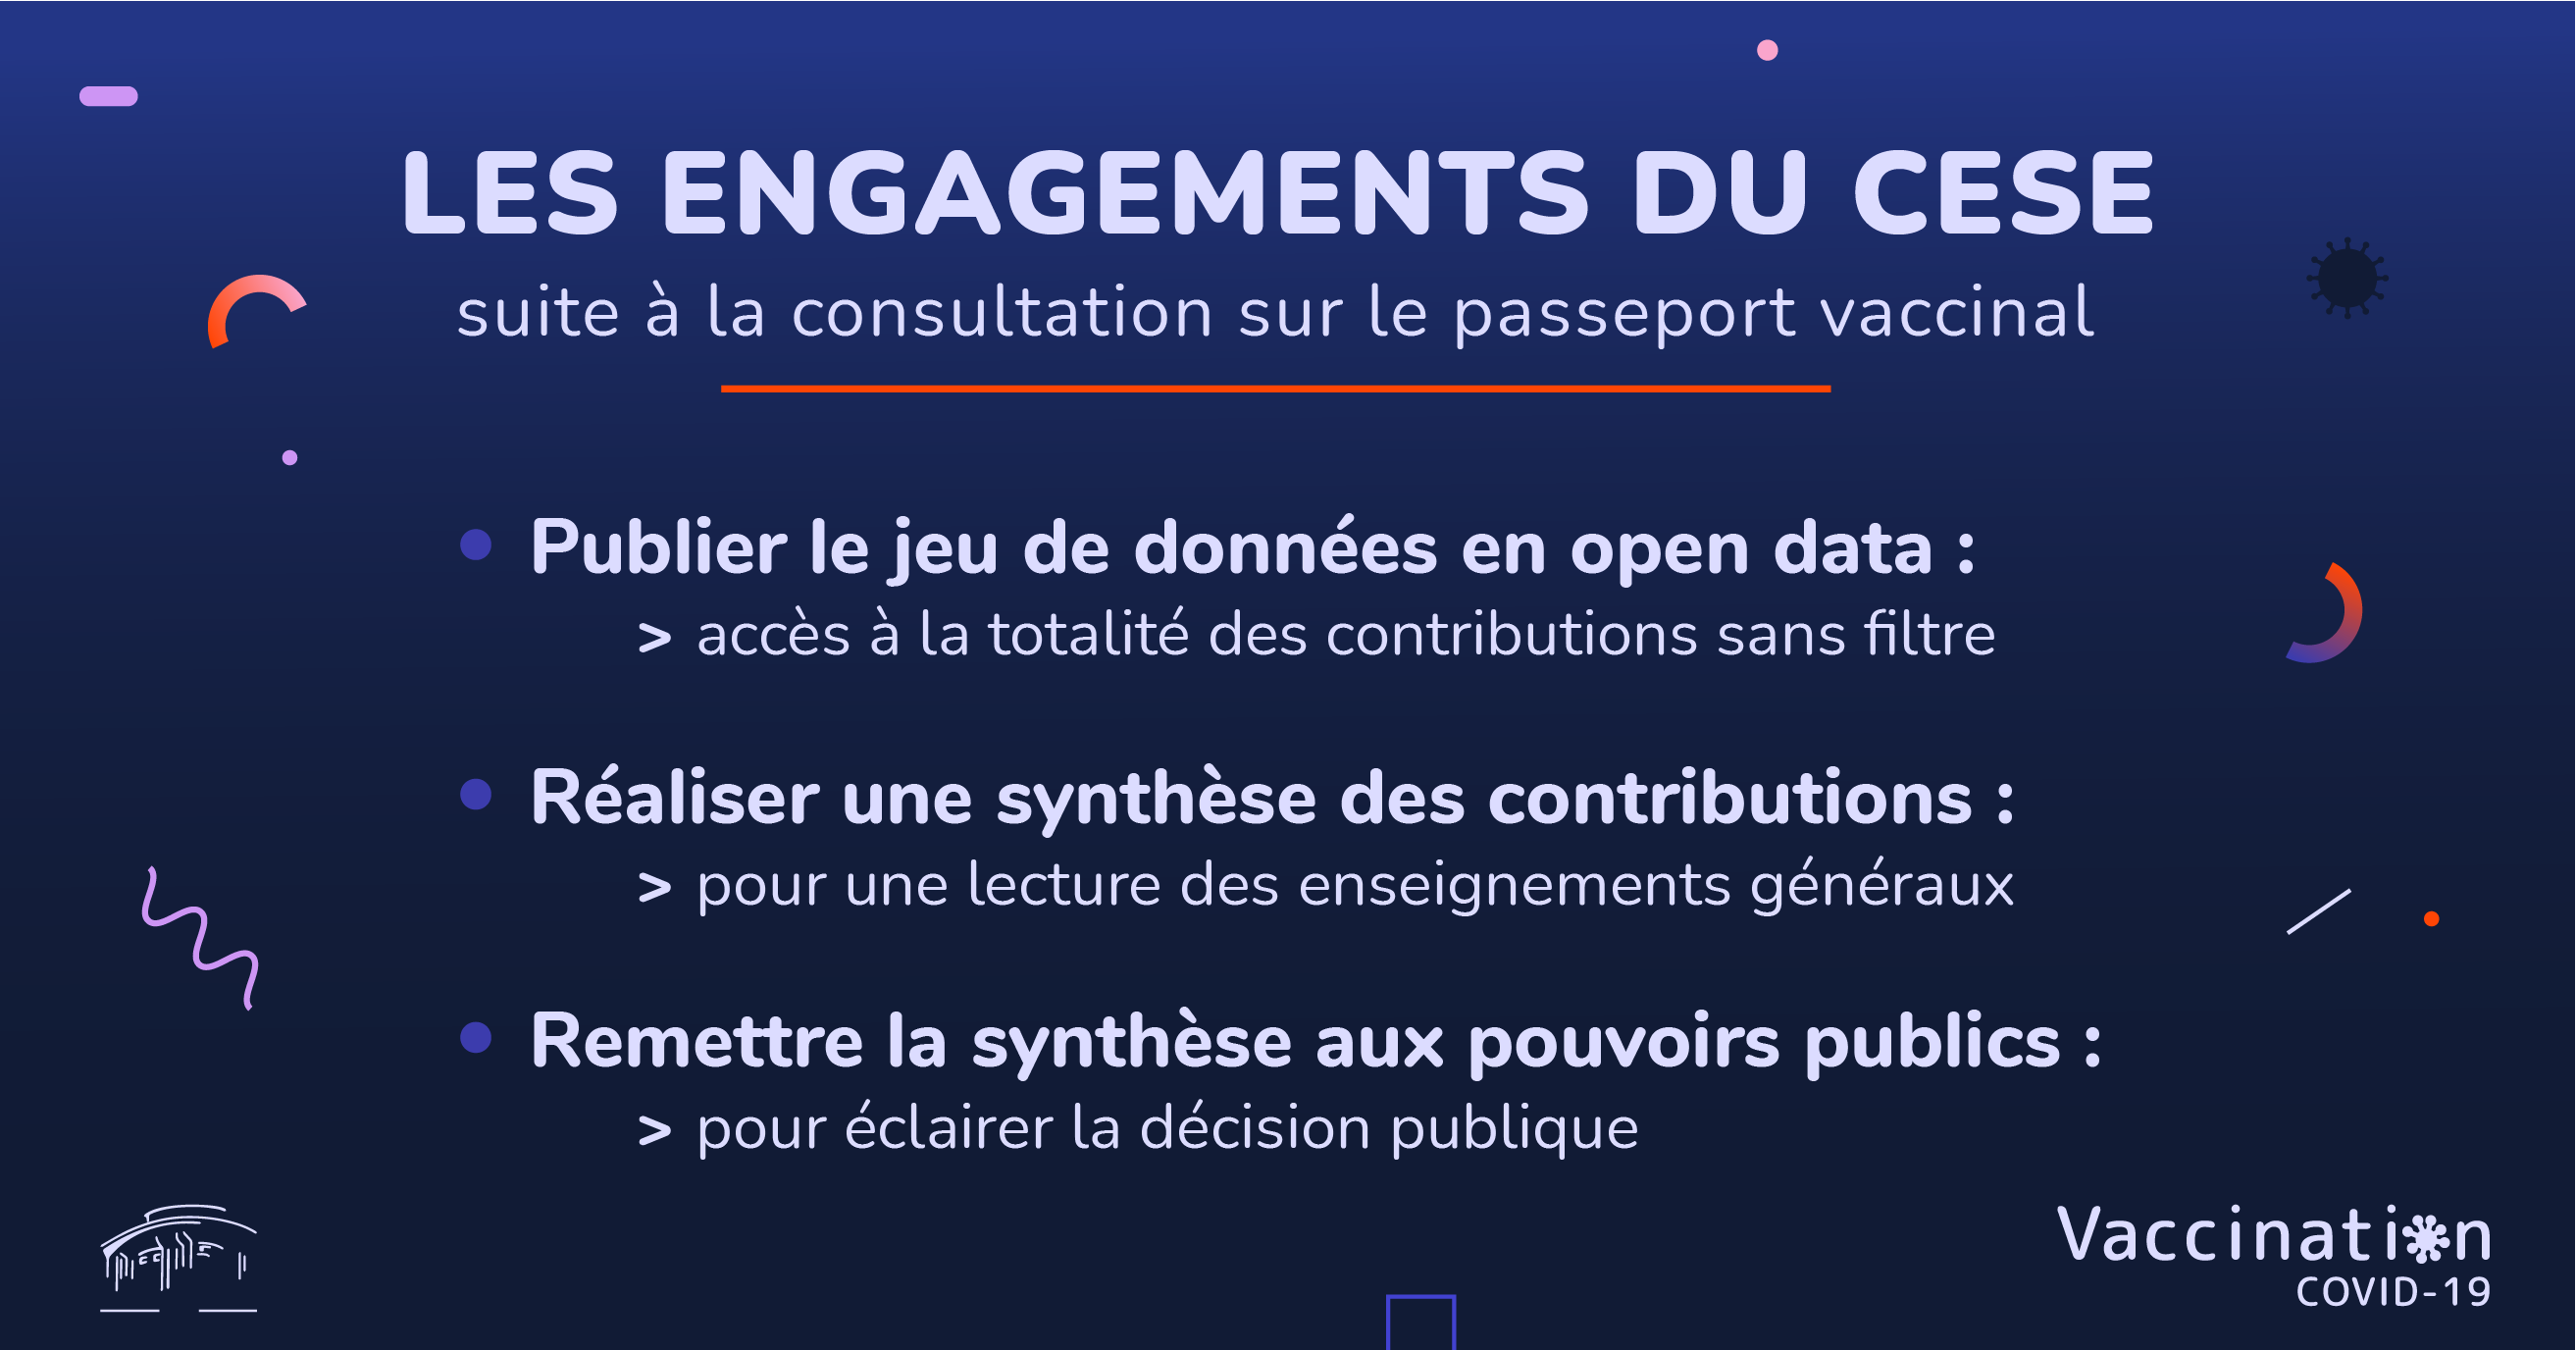 Les engagements du CESE suite à la consultation